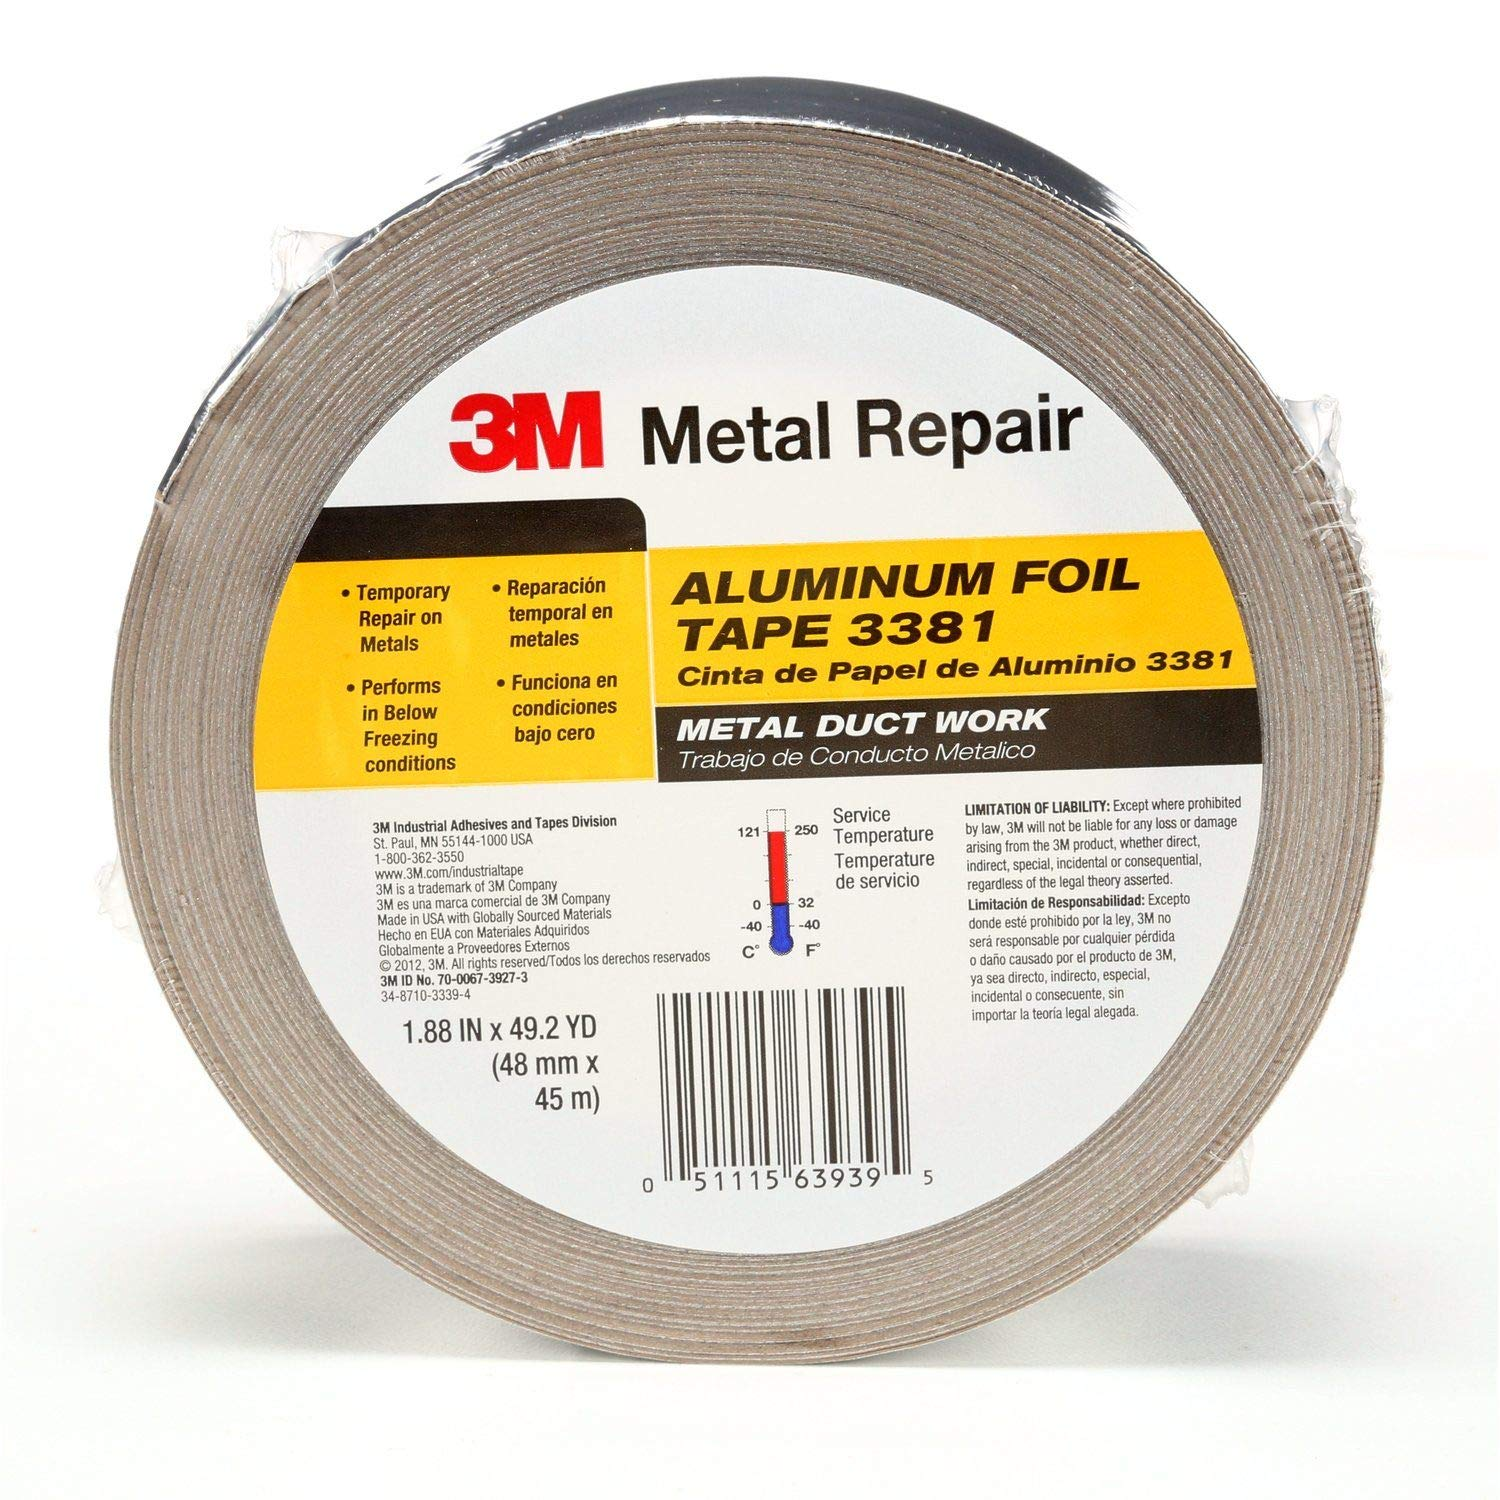 "3M Aluminum Foil Tape 3381, 1.88"" x 50 yd, 2.7 mil, Silver, HVAC, Sealing and Patching, Moisture Barrier, Cold Weather, Air Ducts, Foam Sheathing Boards, Insulation, Metal Repair"